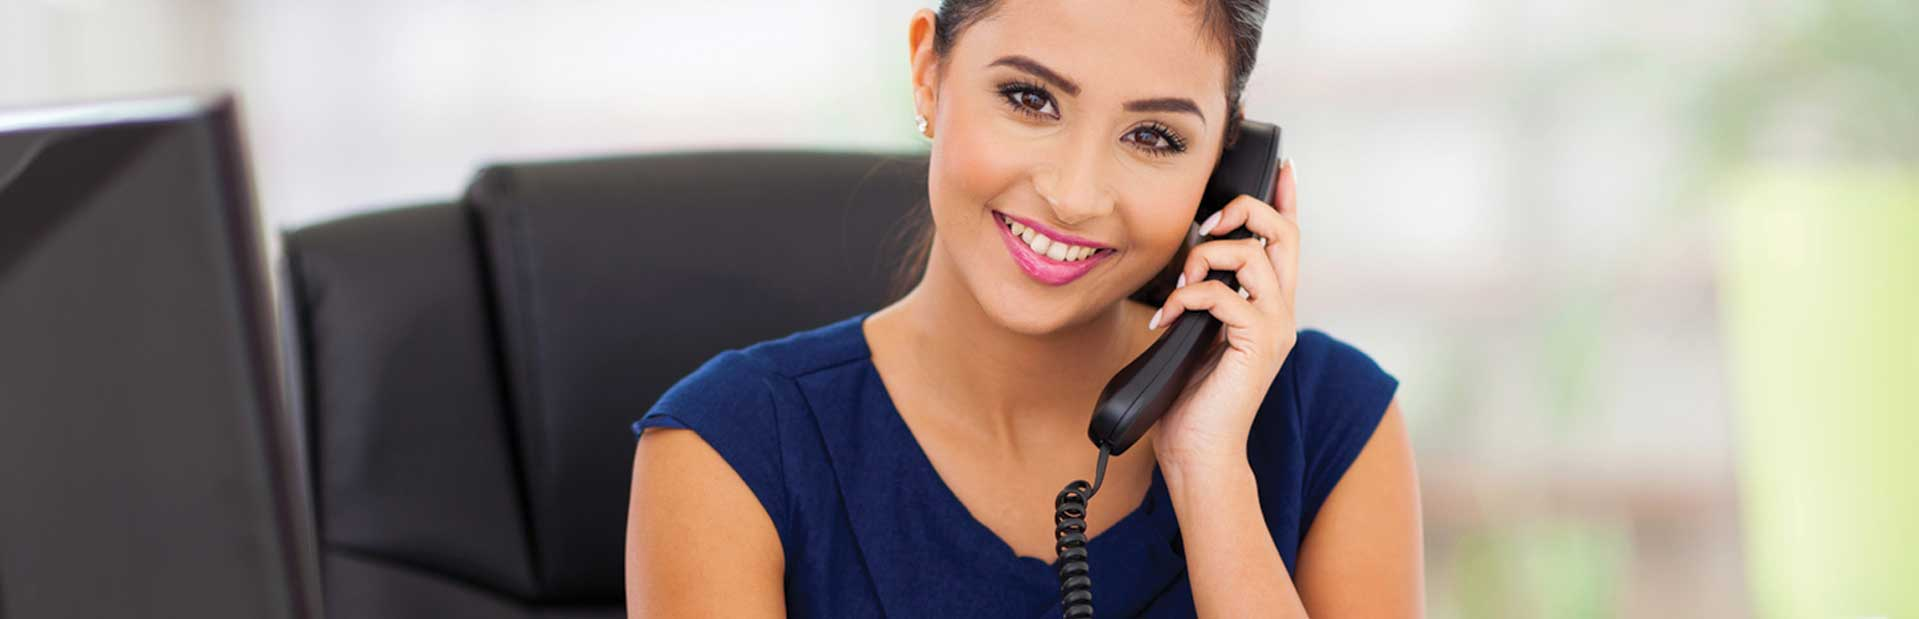 Panasonic Phone Systems - Expert Telecommunications, Melbourne